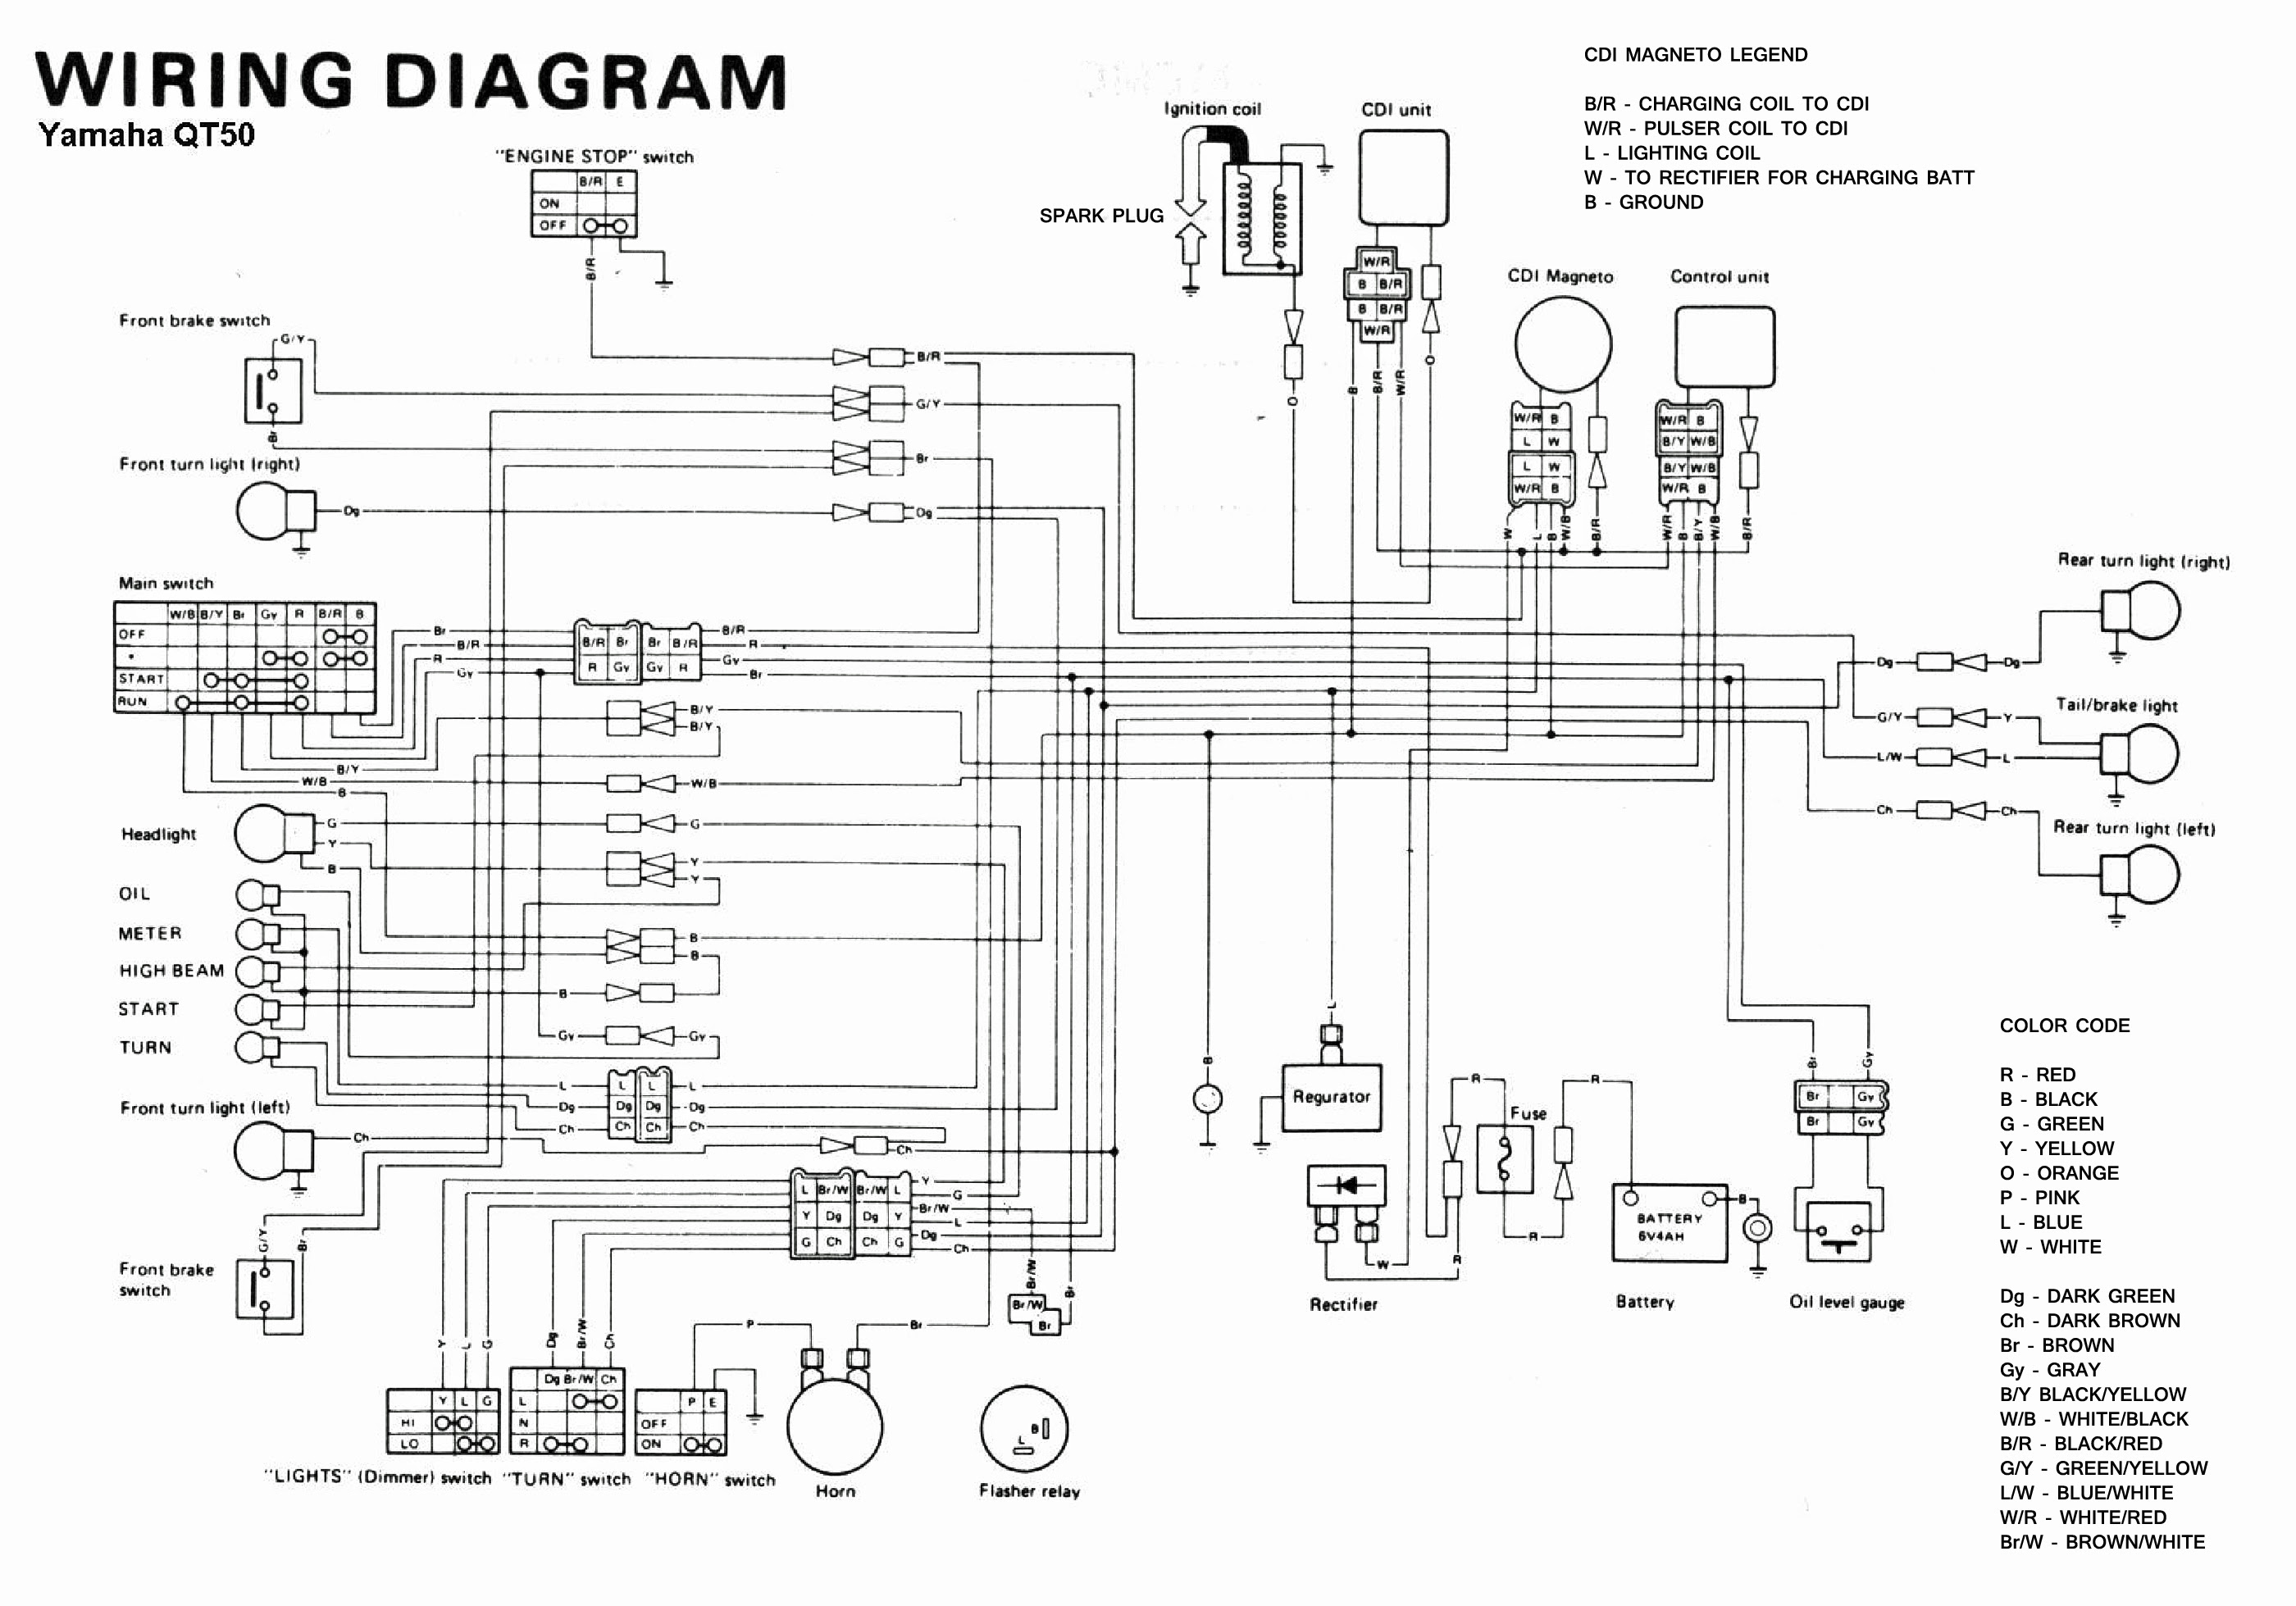 Diagram 1989 Yamaha Warrior Wiring Diagram Full Version Hd Quality Wiring Diagram Diagrampdfxl Euroboxer It